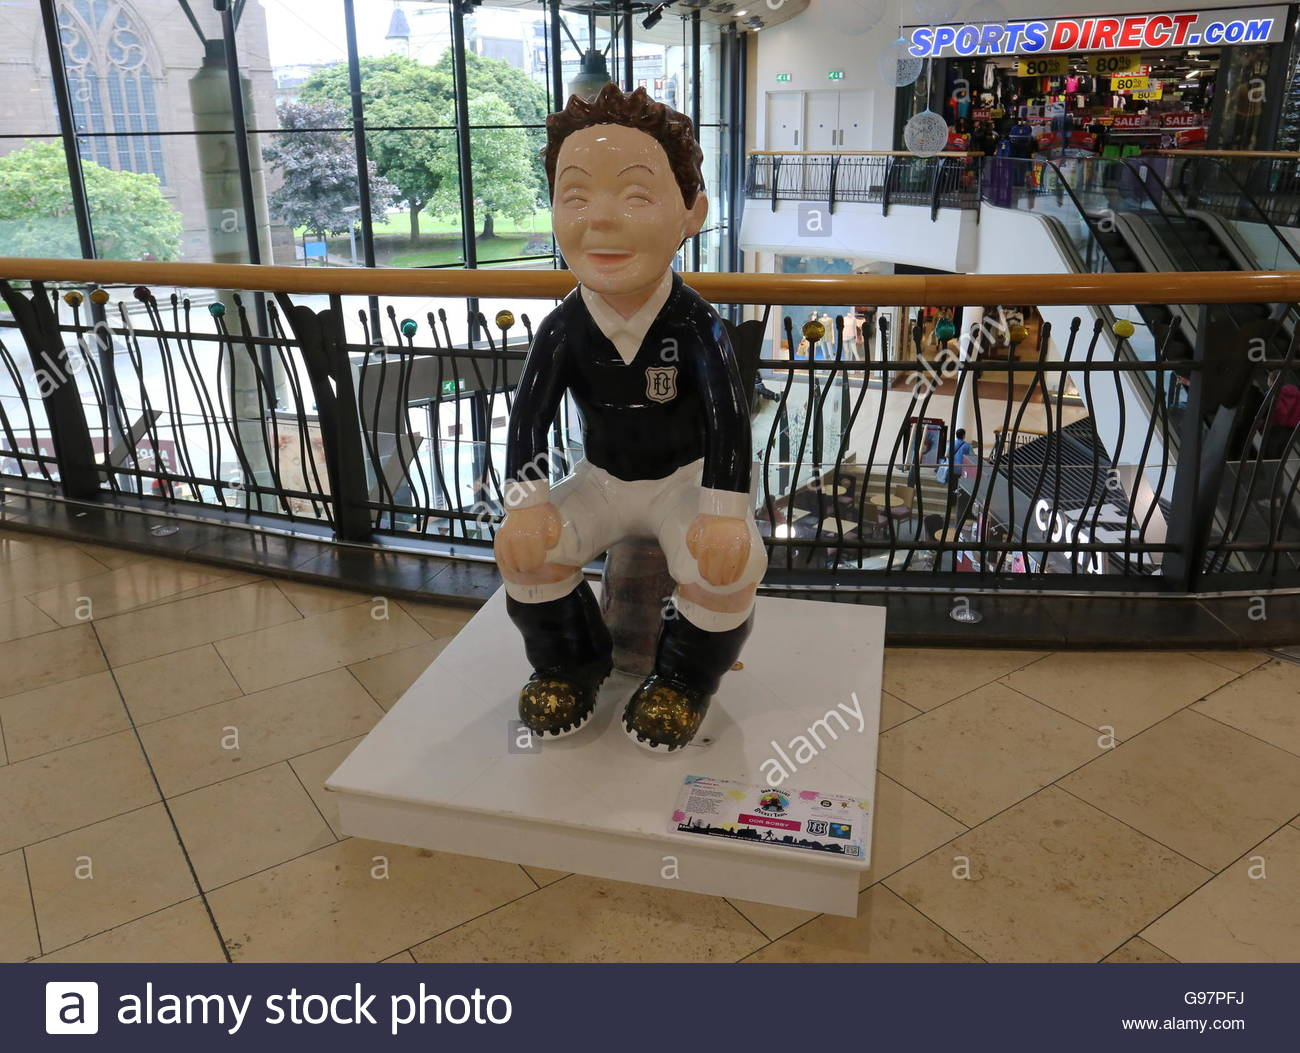 Oor Bobby sculpture by Nina Garty on Oor Wullie Bucket Trail in Overgate Centre Dundee Scotland  June 2016 - Stock Image